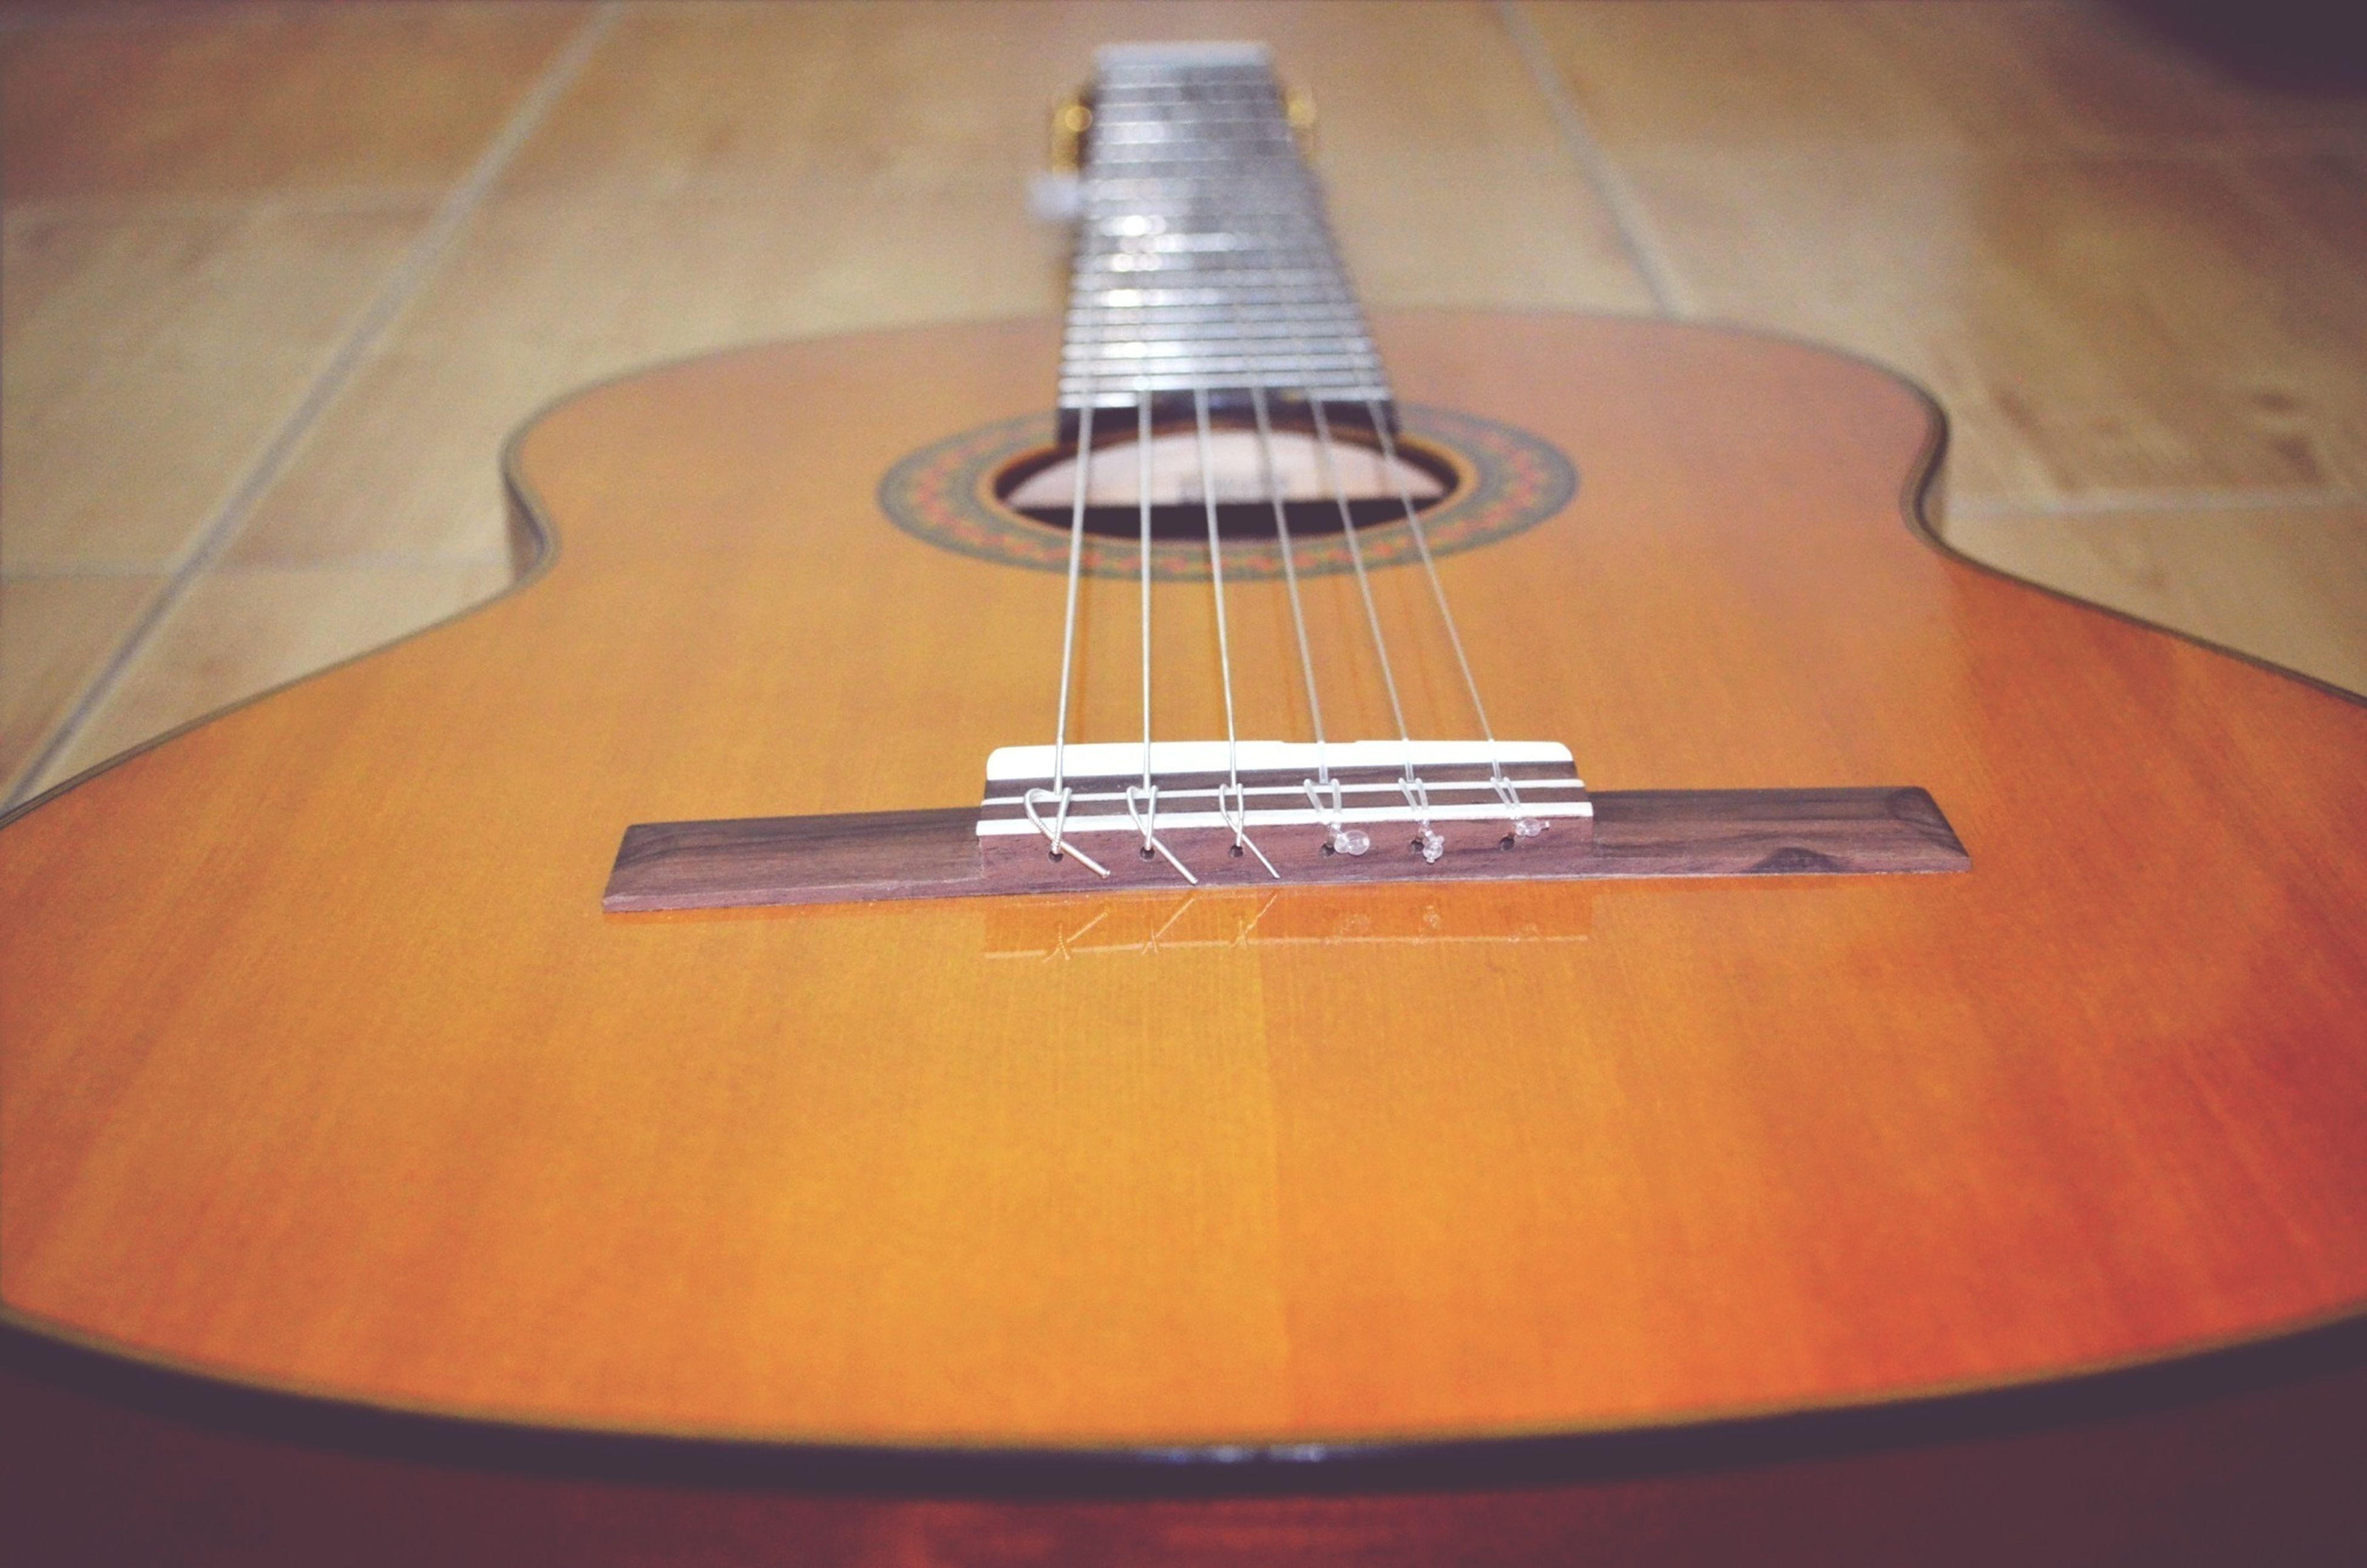 indoors, musical instrument, music, musical instrument string, musical equipment, guitar, arts culture and entertainment, string instrument, still life, acoustic guitar, close-up, illuminated, technology, high angle view, no people, table, selective focus, piano, wood - material, piano key